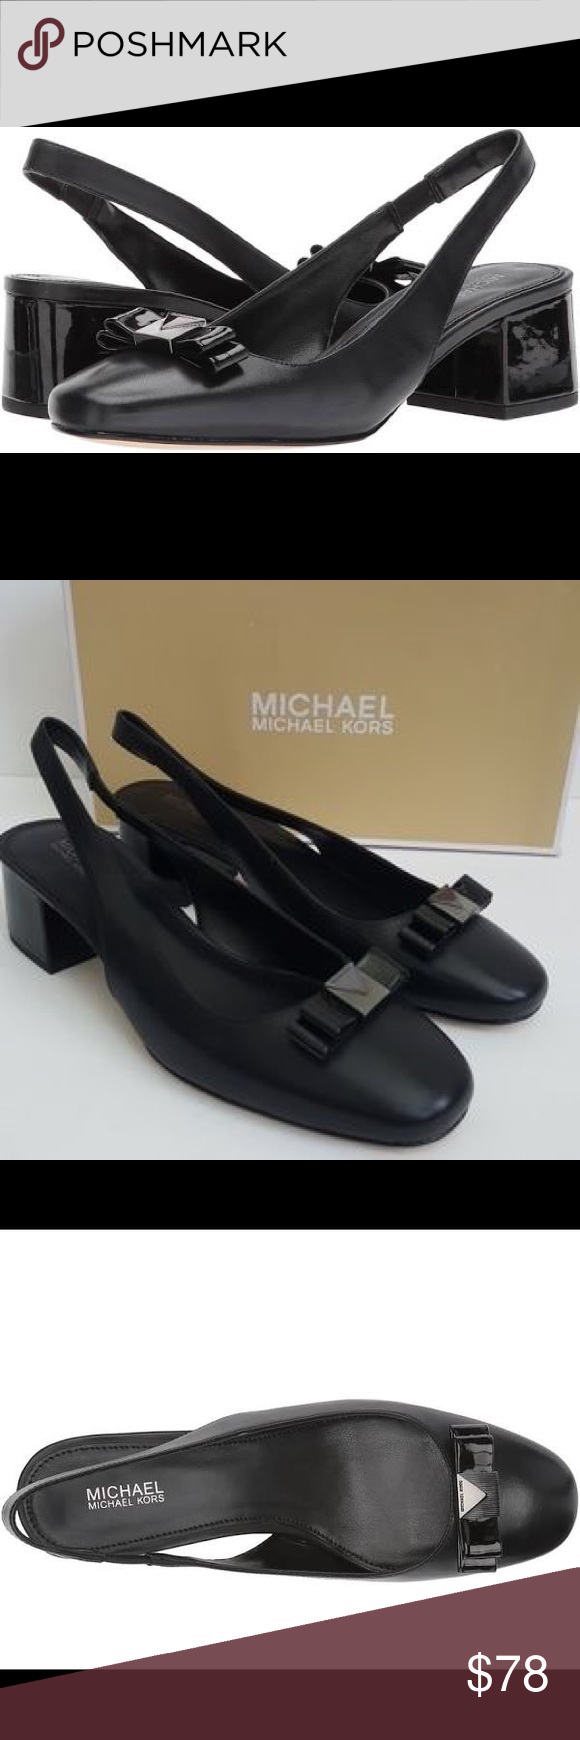 1c9f04753fb Michael Kors Caroline Leather Slingback Pumps 9.5 Go-to workweek style gets  a contemporary update